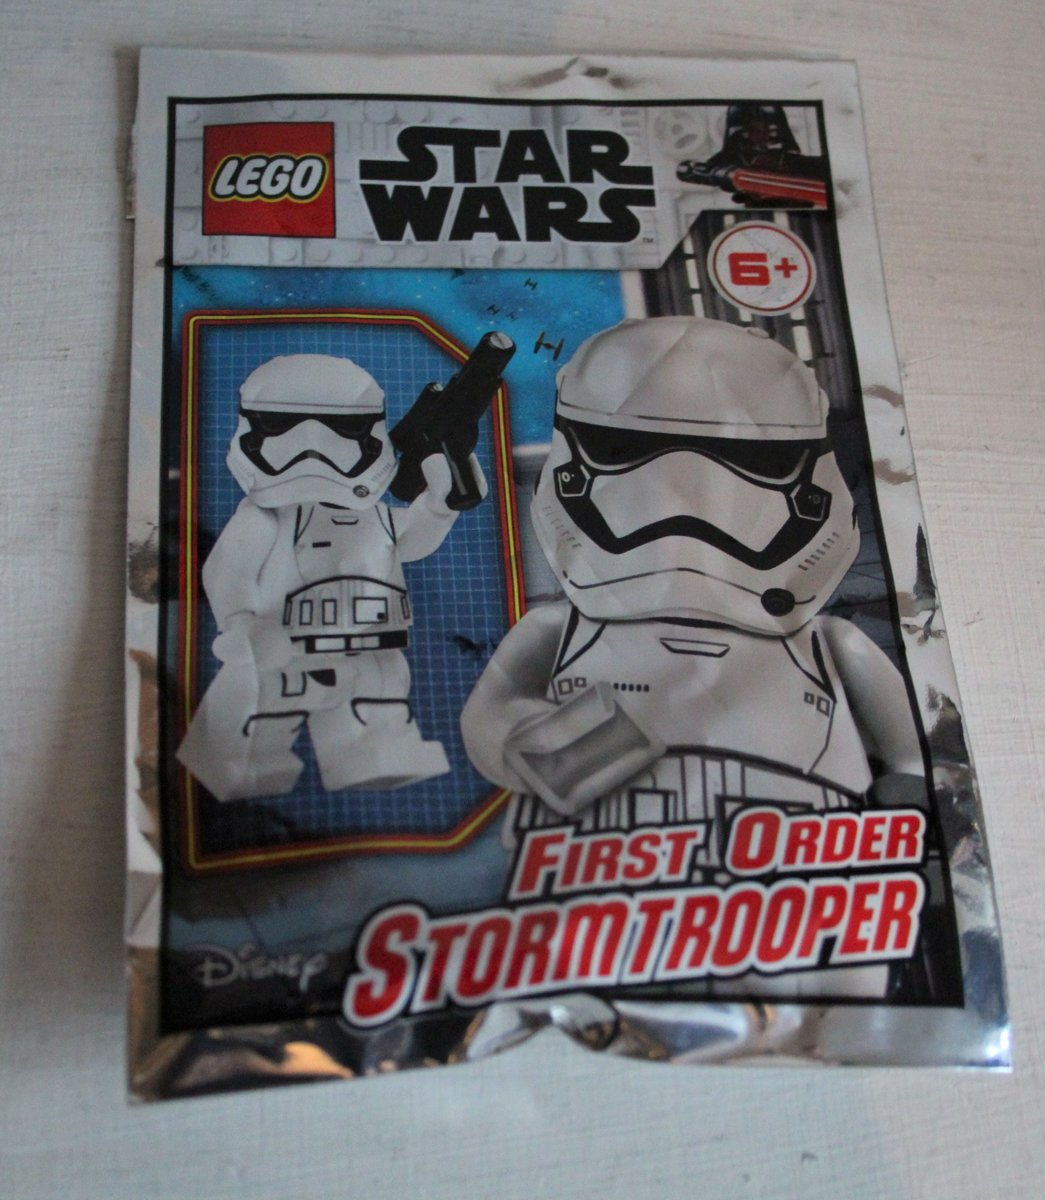 Lego Star Wars Mini Figure - FIRST ORDER STORMTROOPER (polybag)